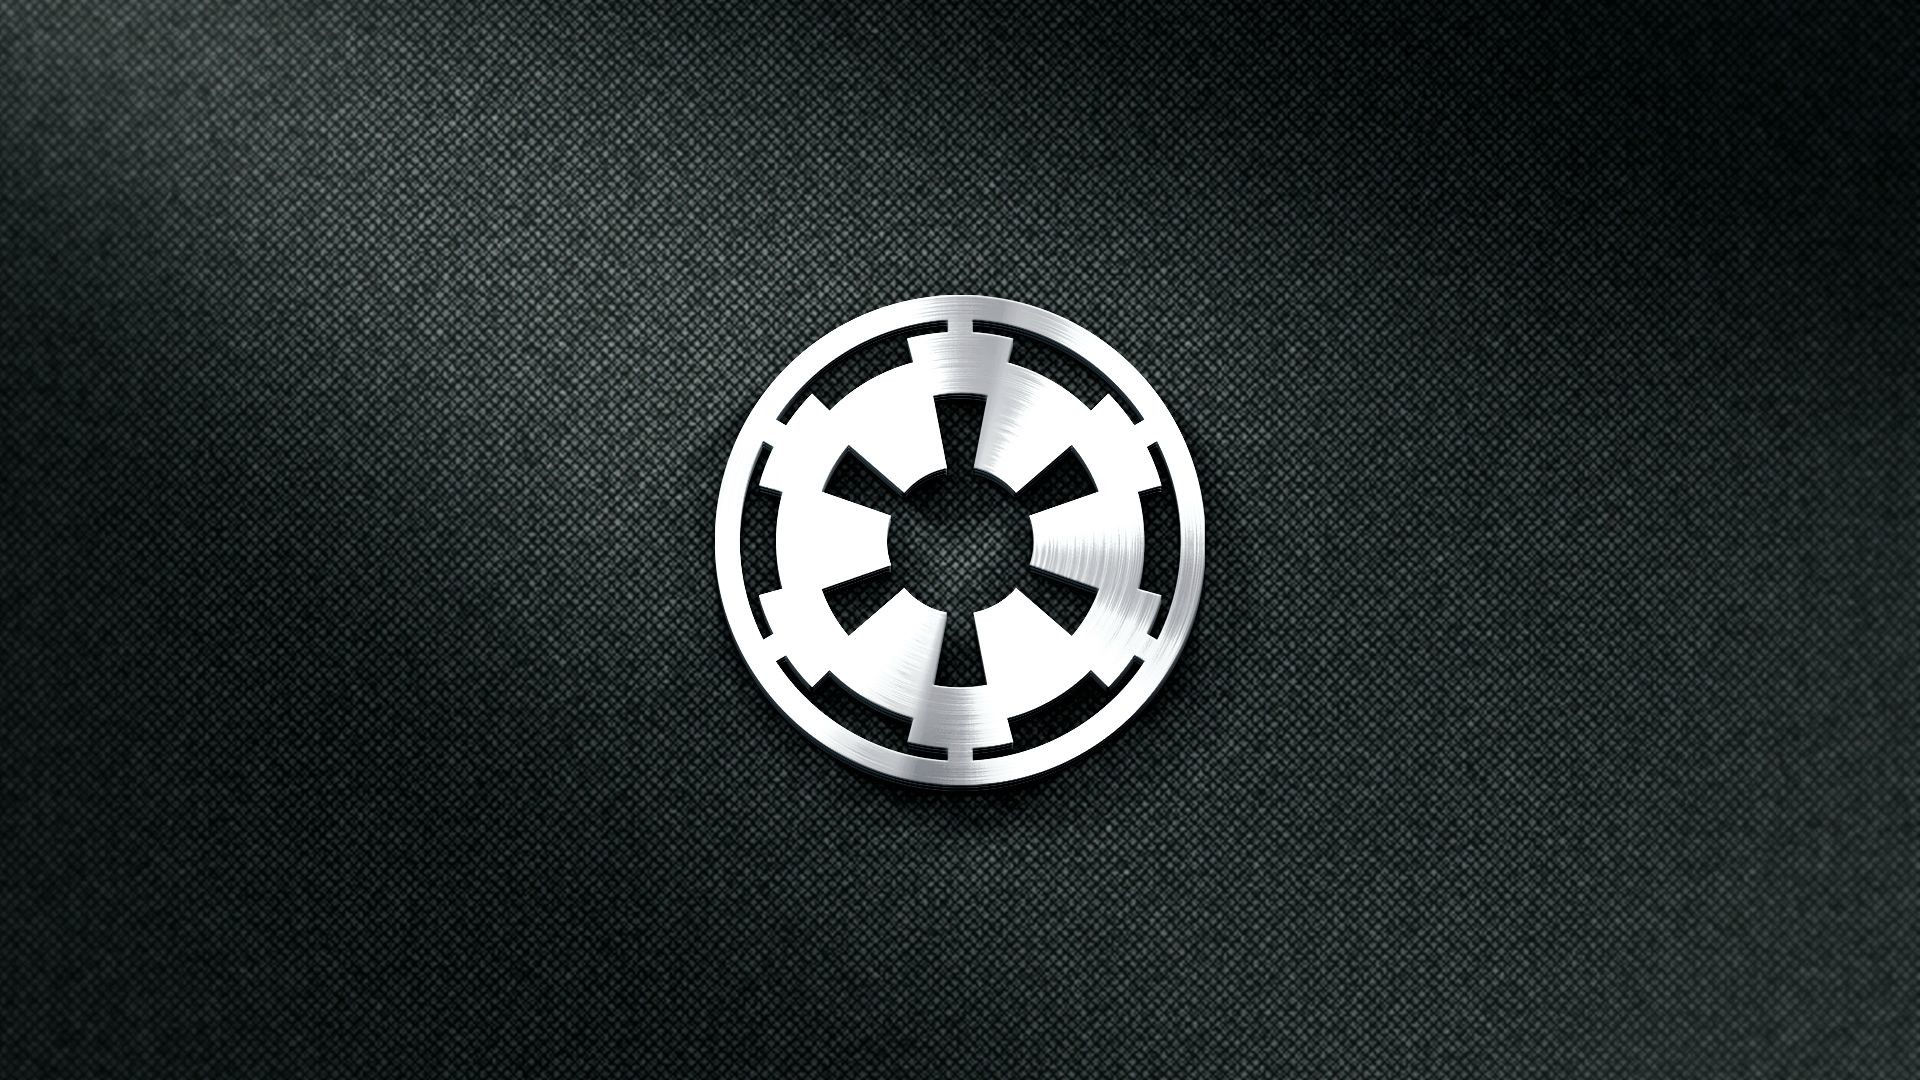 Yin And Yang Wallpaper Hd Star Wars Imperial Wallpaper Hd 76 Images